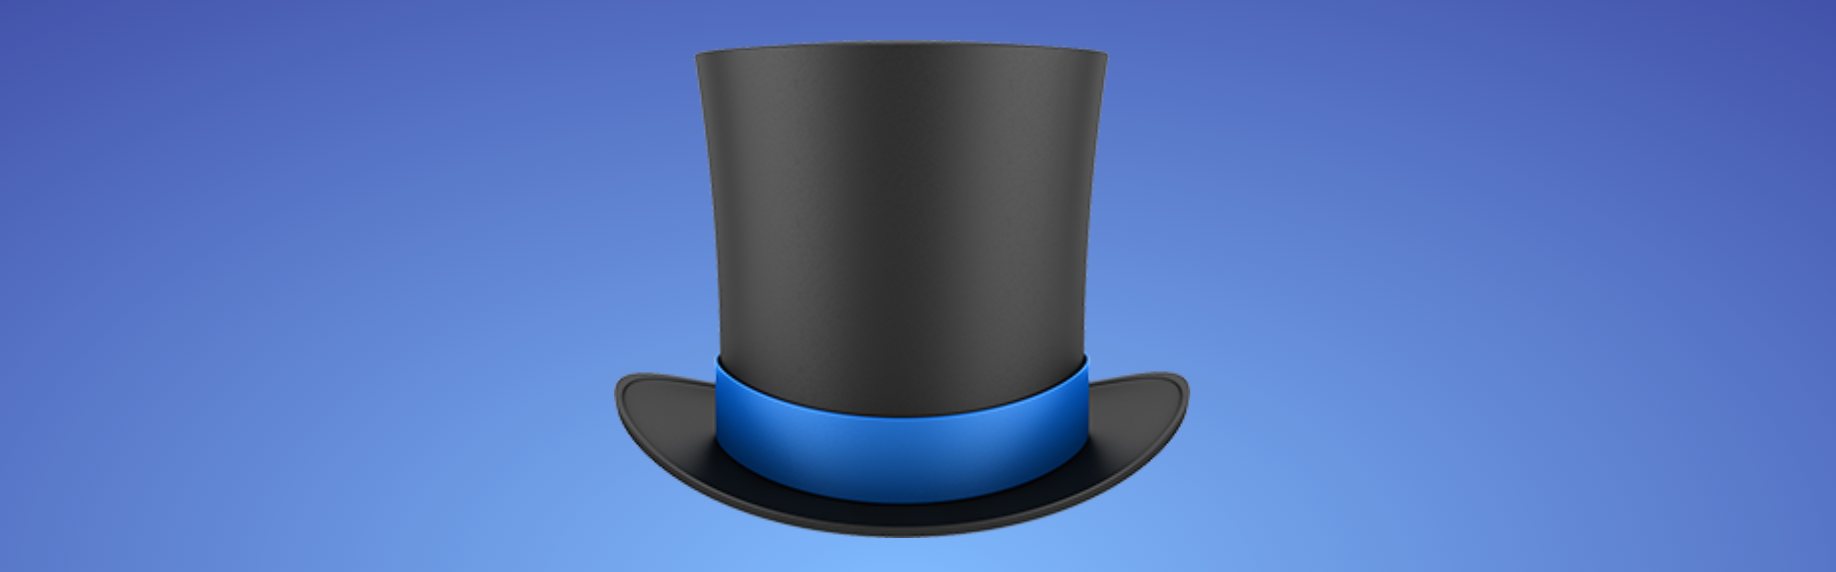 Image of a top hat